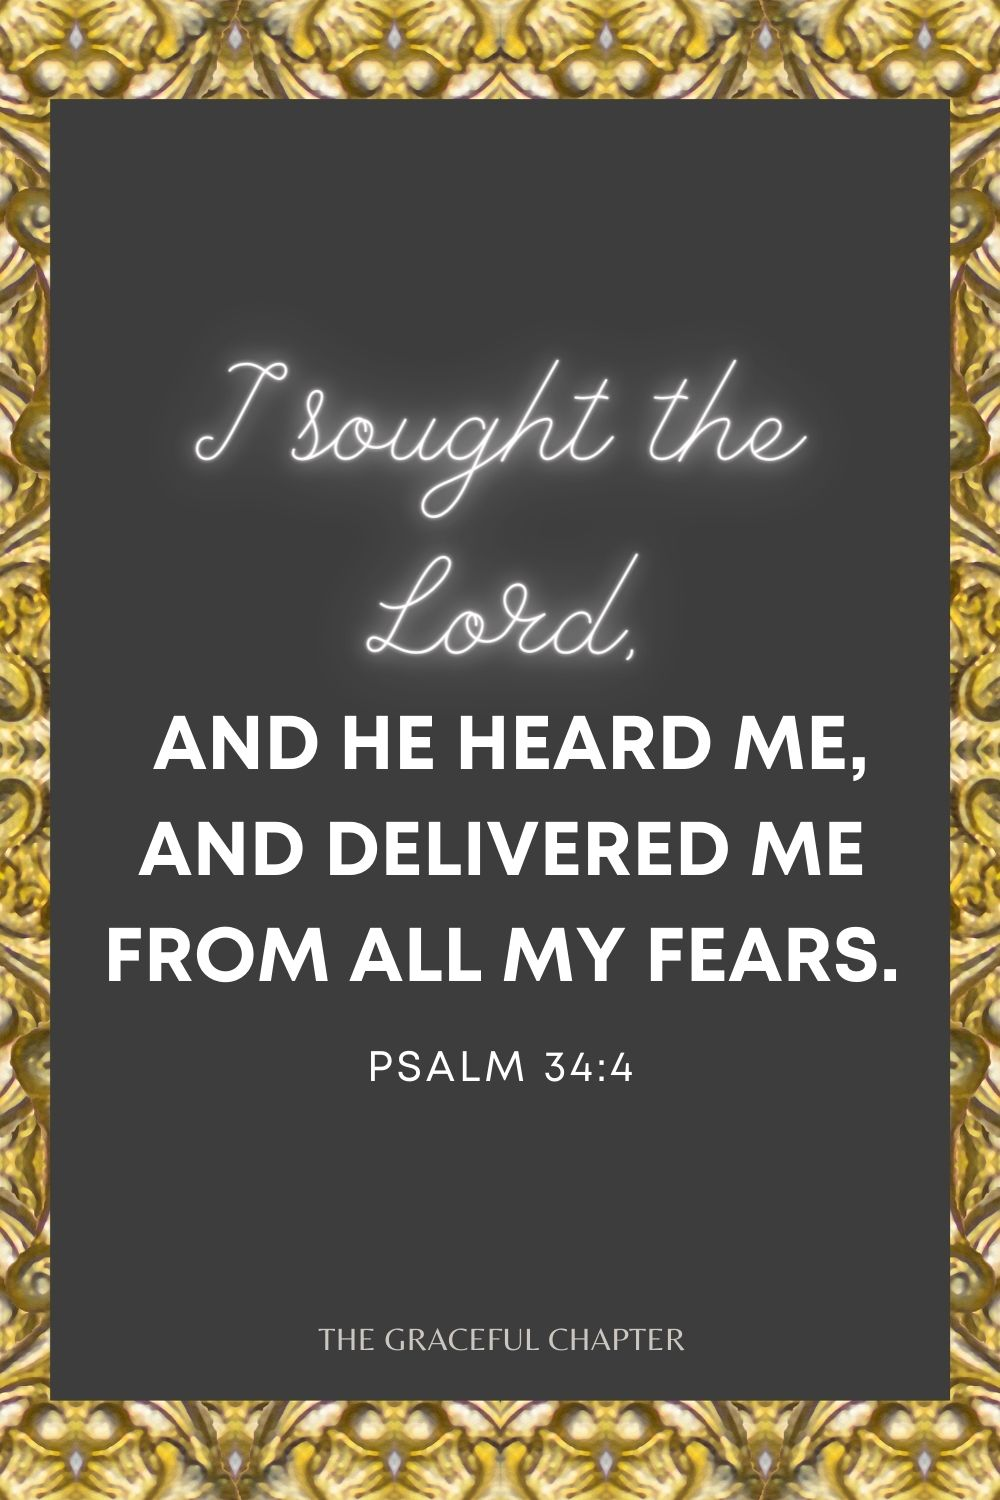 I sought the Lord, and He heard me, And delivered me from all my fears. Psalm 34:4